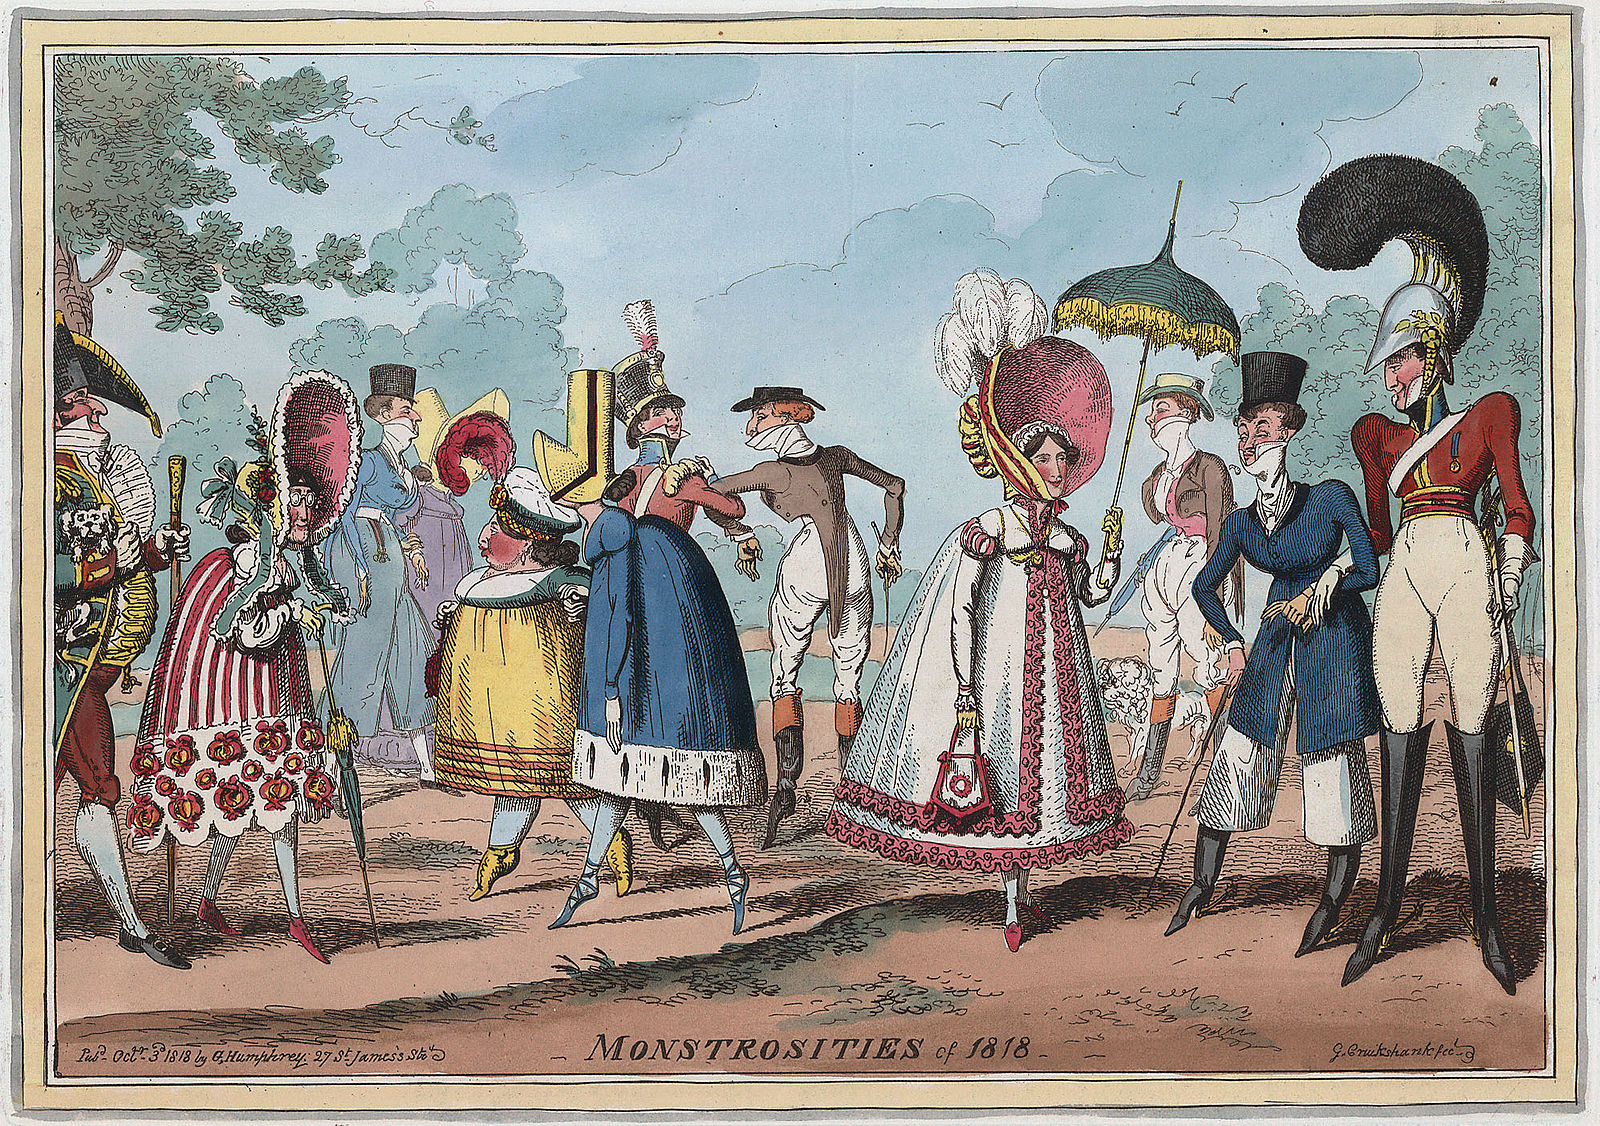 Reference Image 'Monstrosities of 1818, Cruikshank